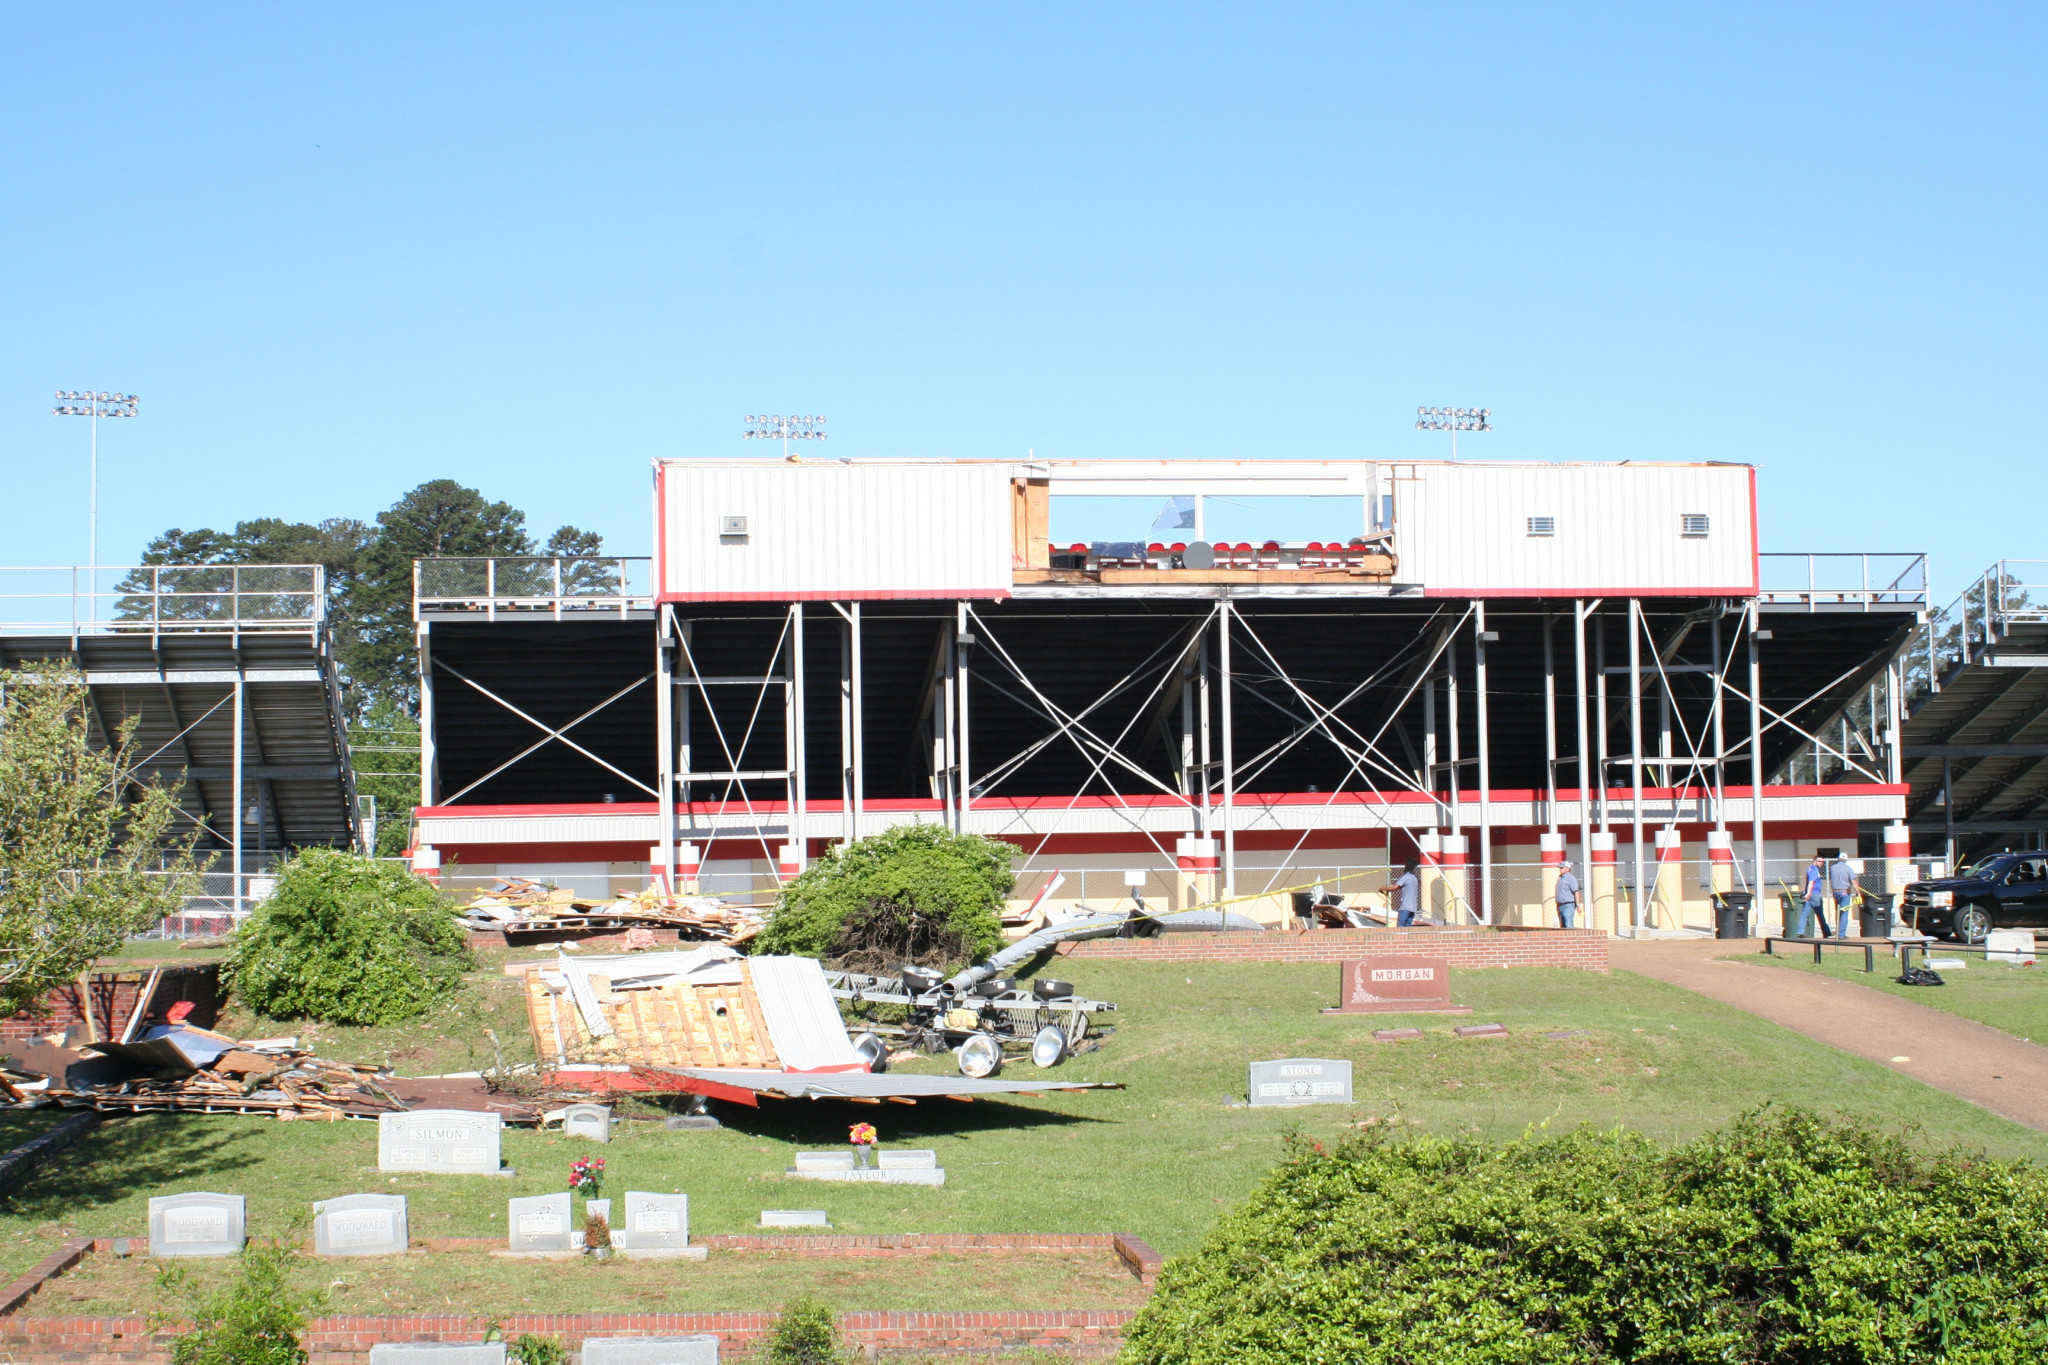 The Ruston High School football stadium press box and light pole knocked out by the storm.